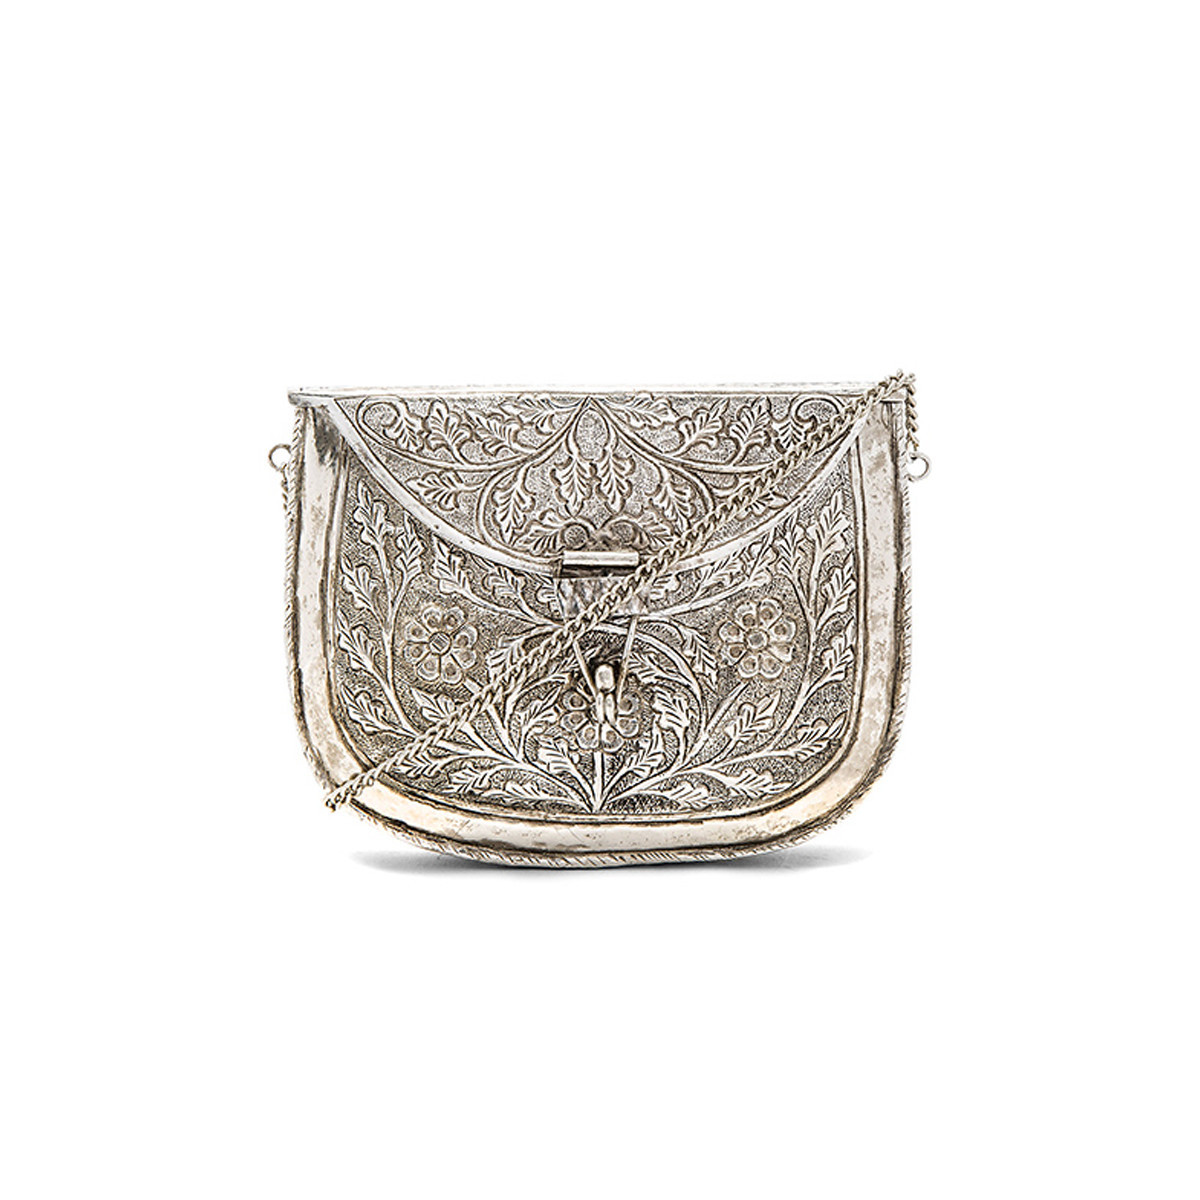 Intricate silver clutch with a clasped top flap photo